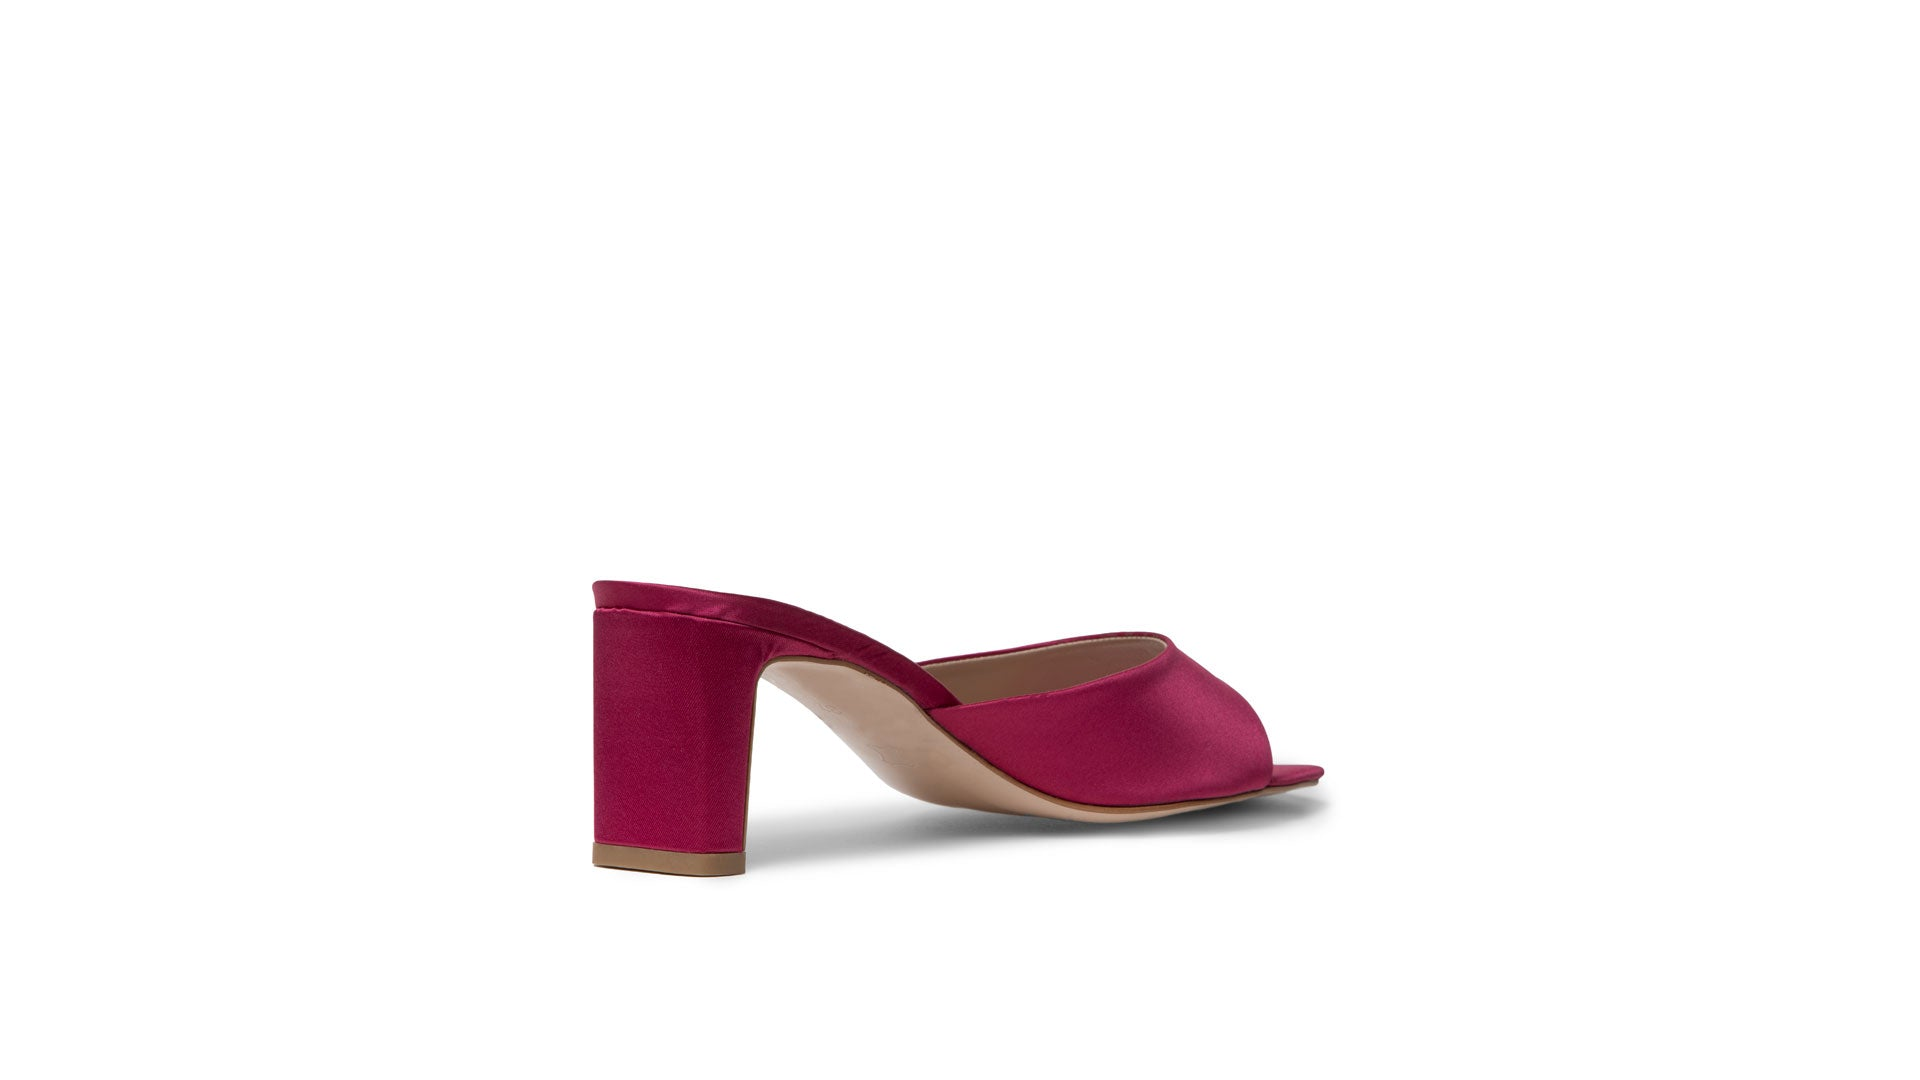 GLAMAZONS GREECE SATIN FUXIA MULE